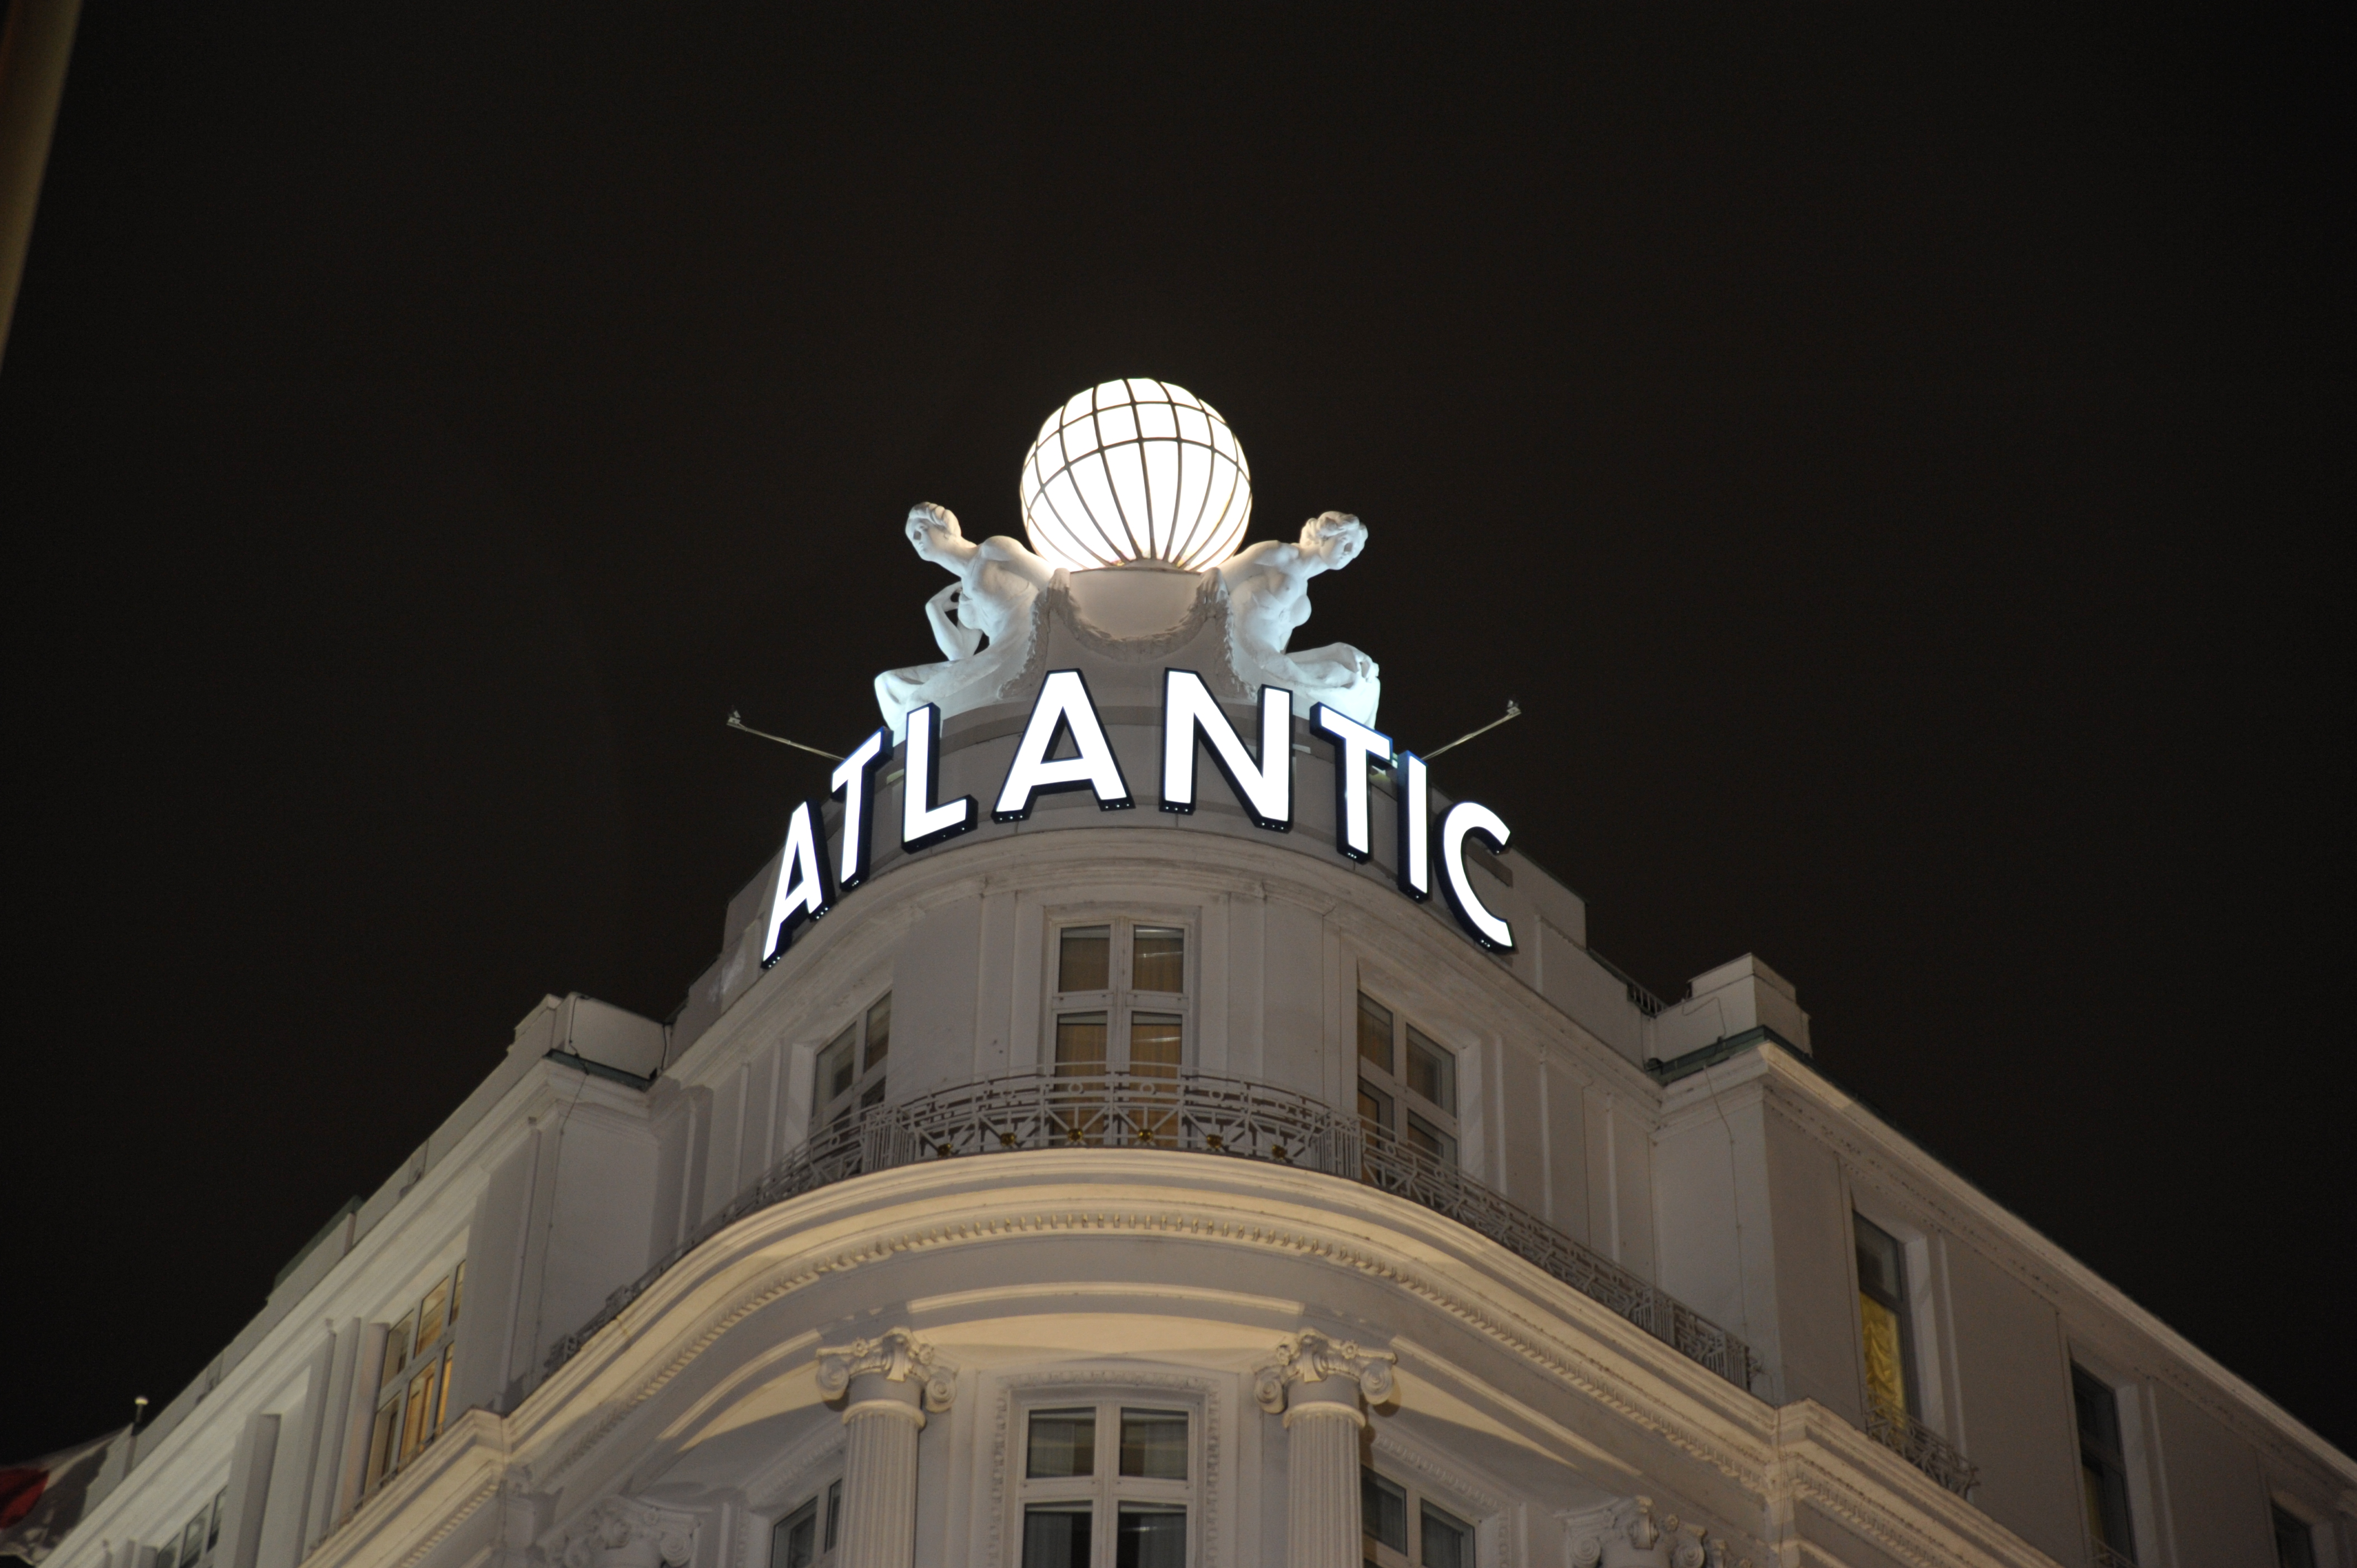 Das Hotel Atlantic in Hamburg